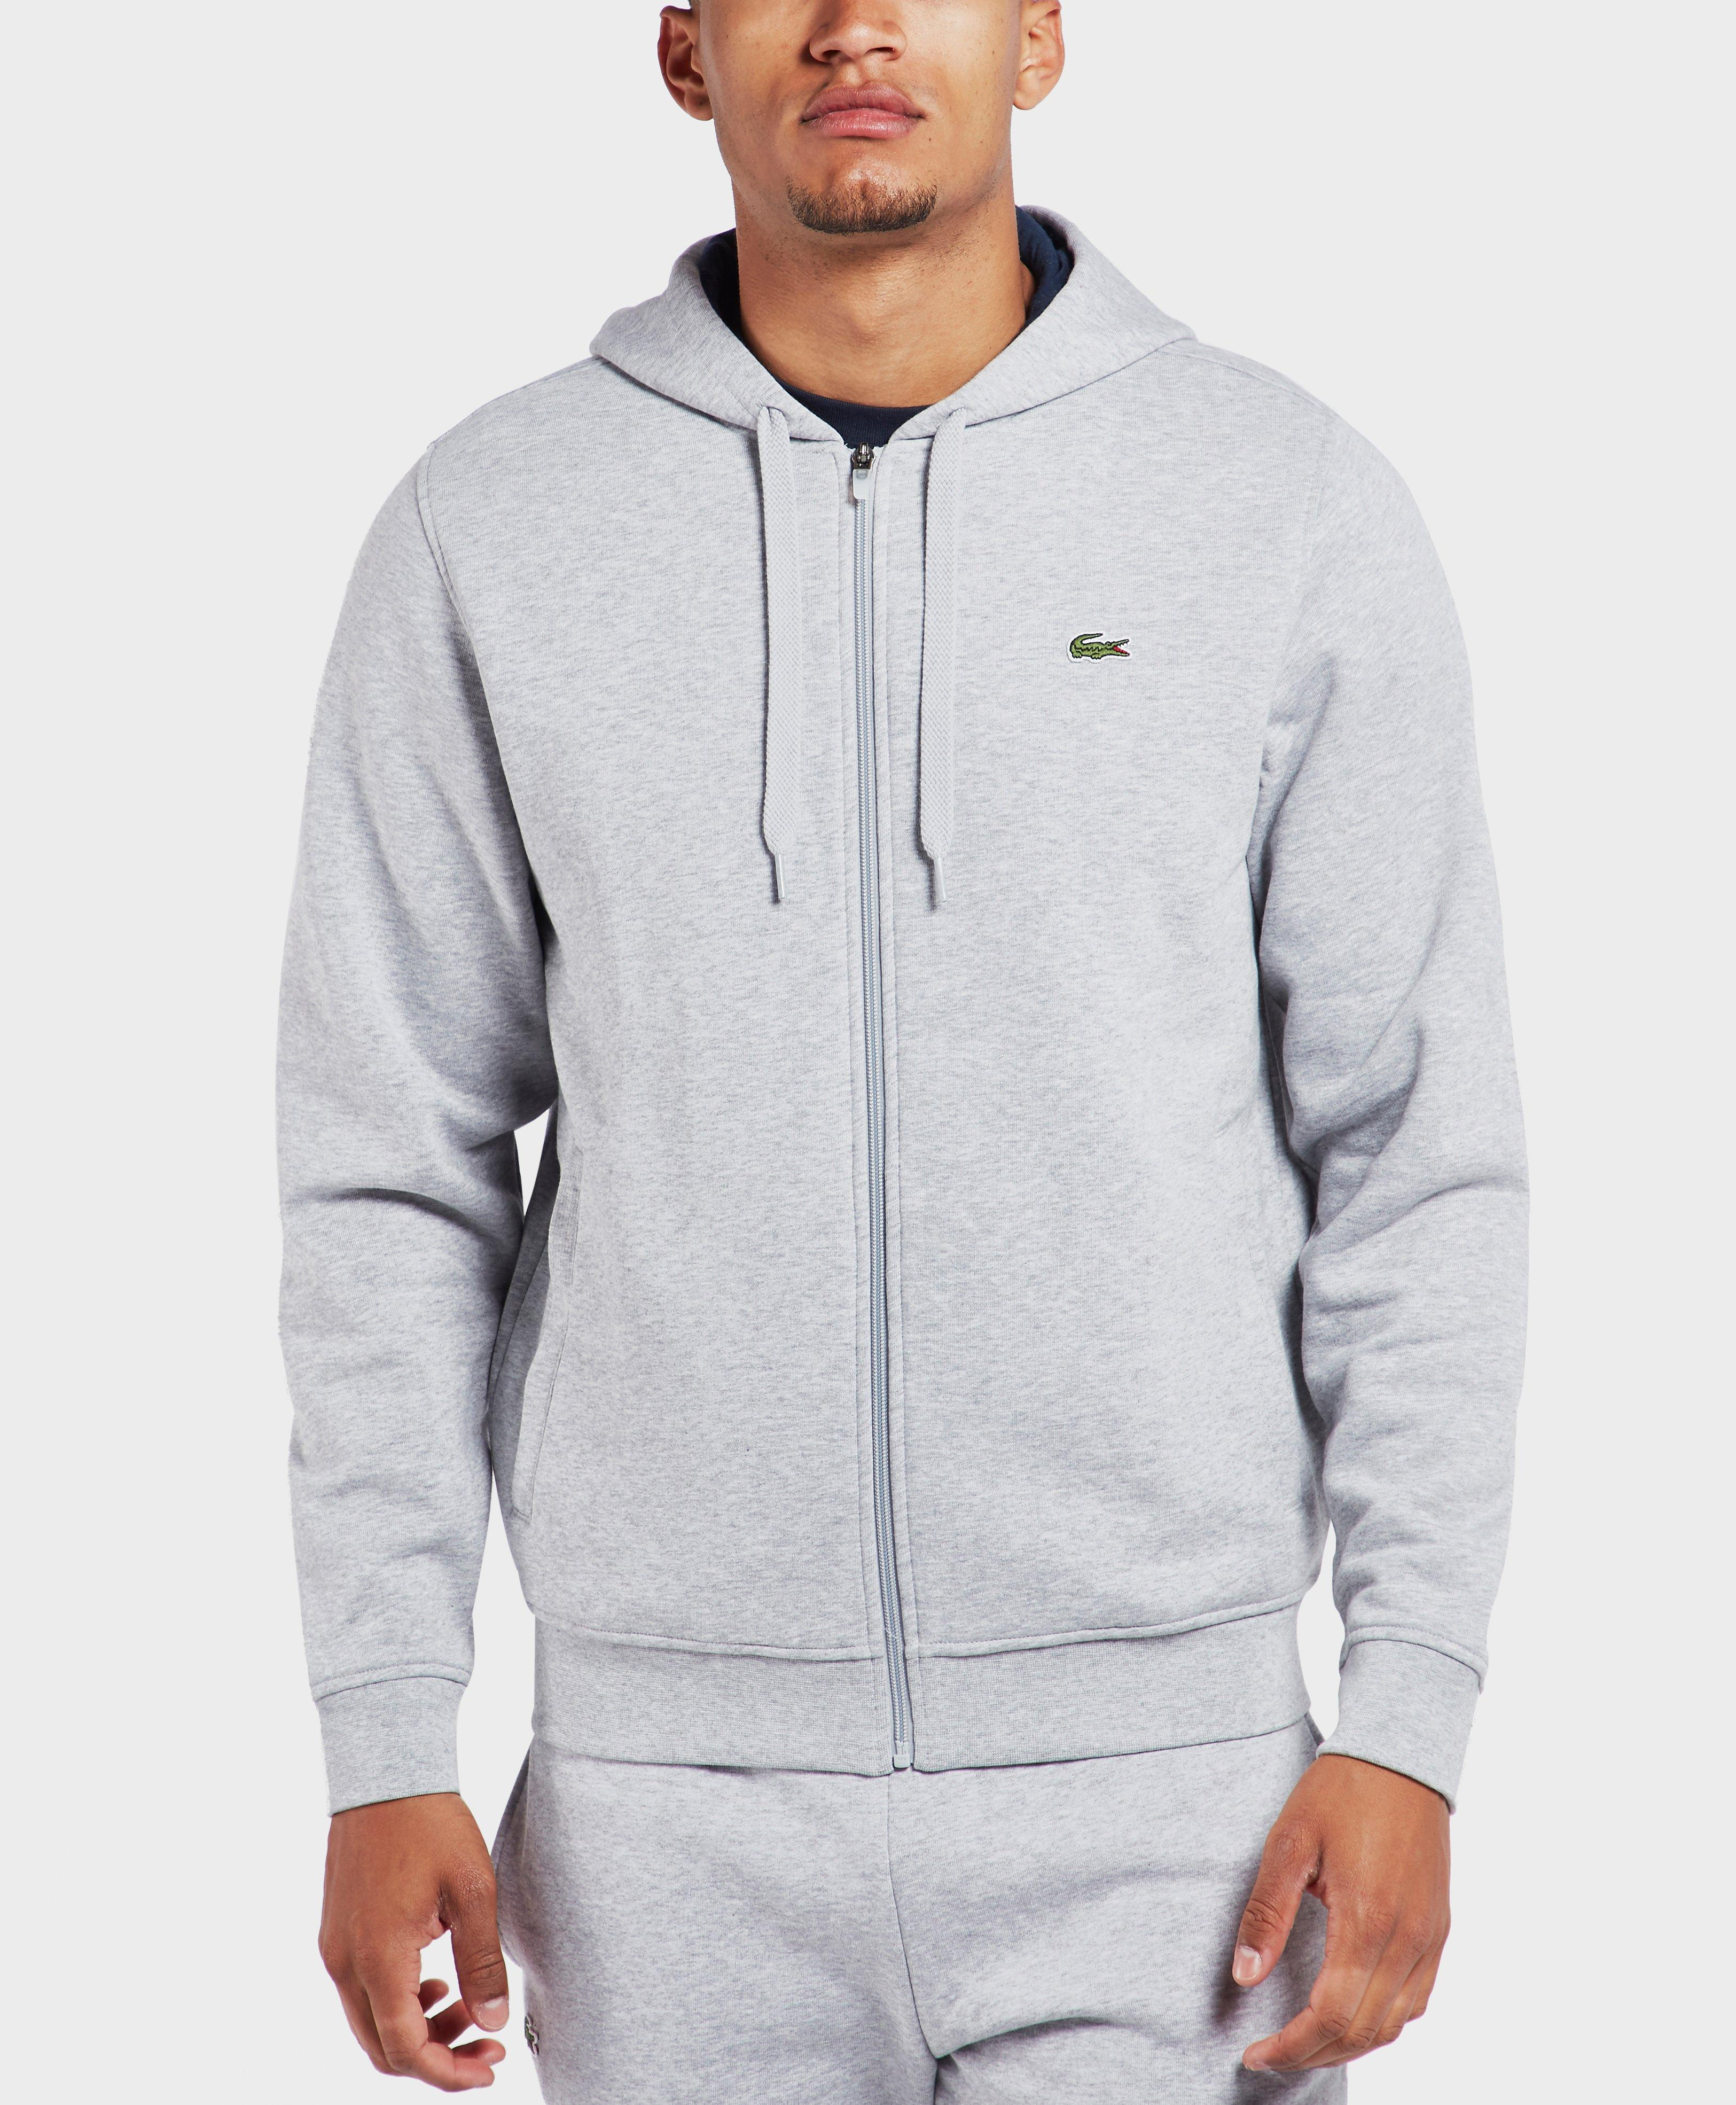 5791f01f51f8 Lyst - Lacoste Hooded Fleece Sweatshirt in Gray for Men